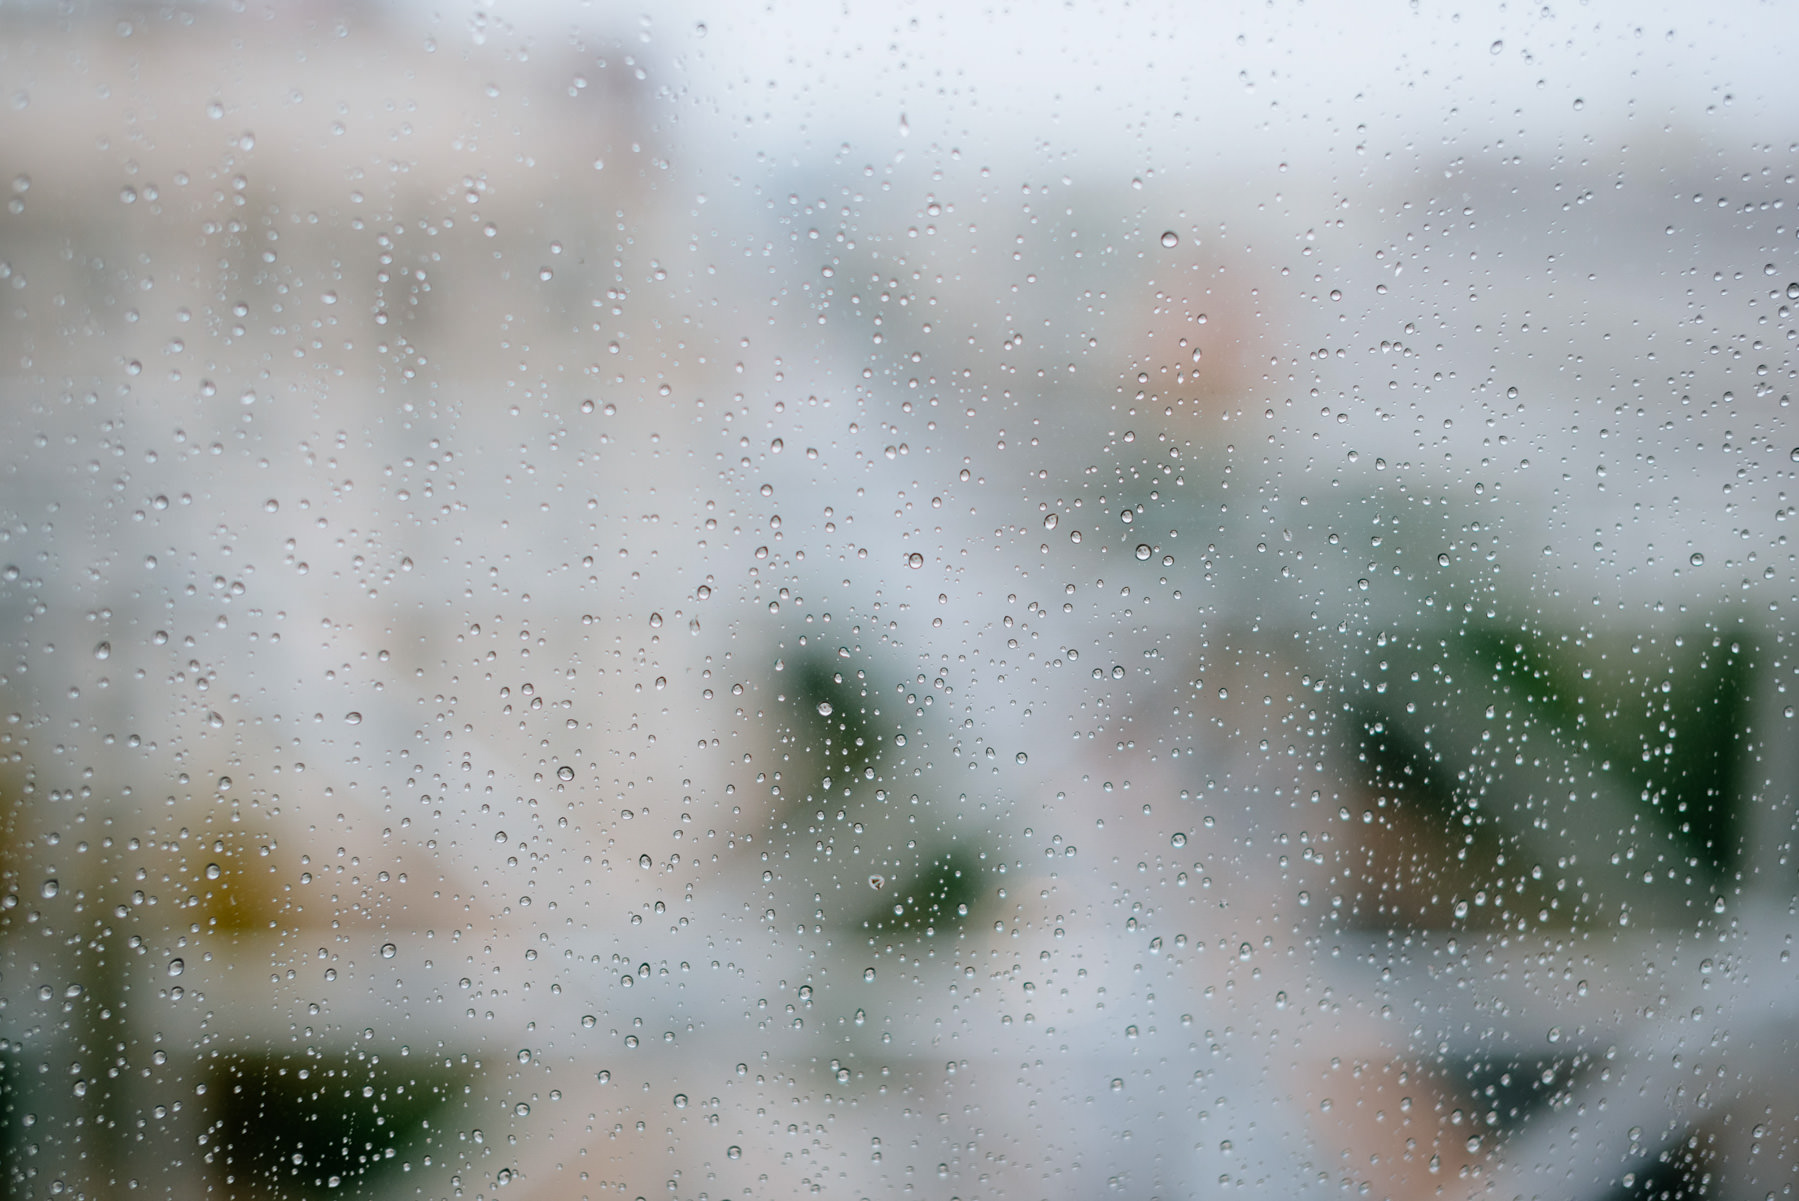 rain on a window pane